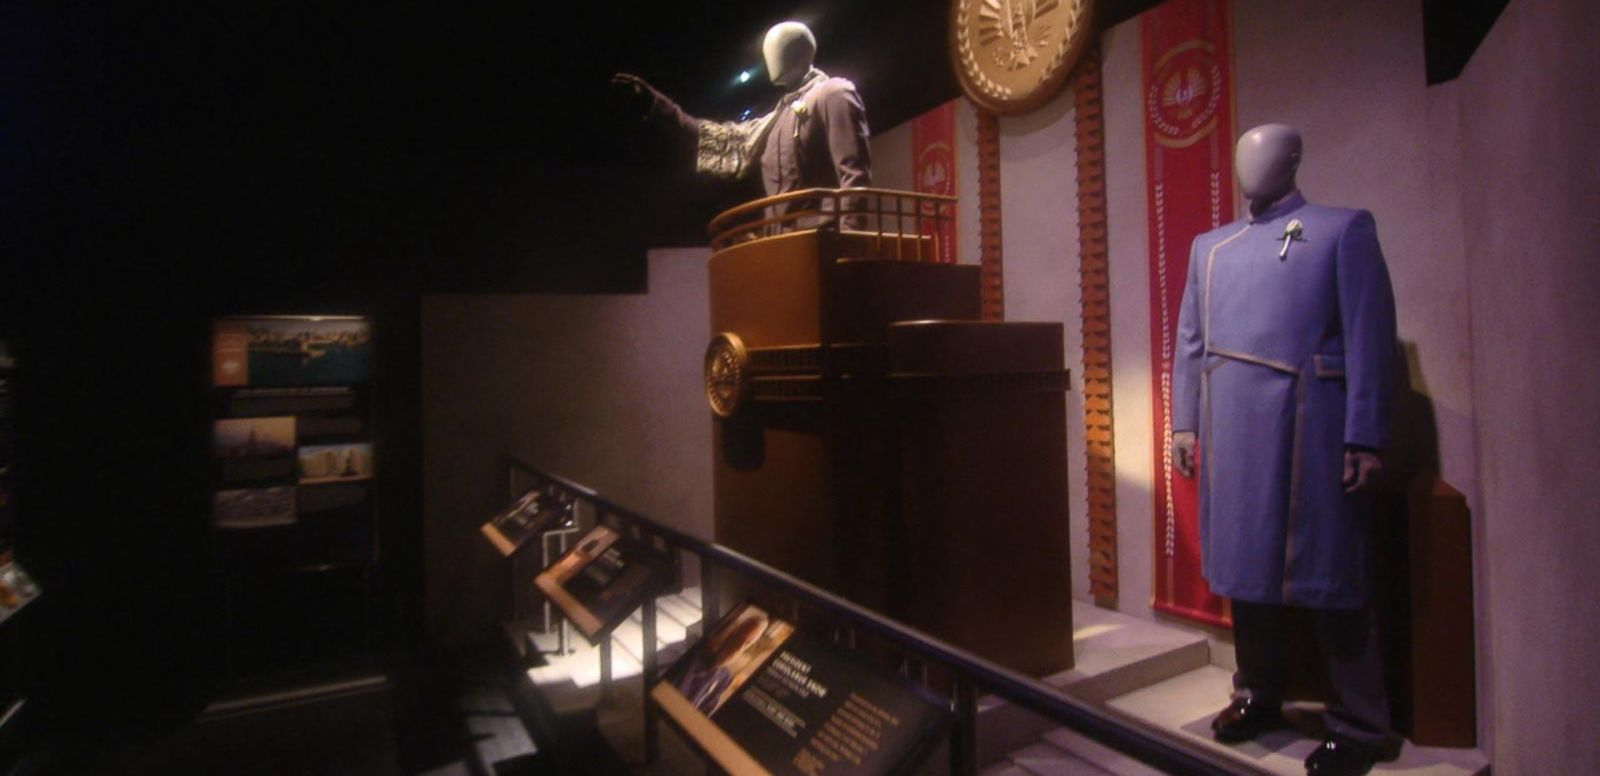 VIDEO: 'Hunger Games' Exhibit in New York Provides Glimpse Into Katniss' World